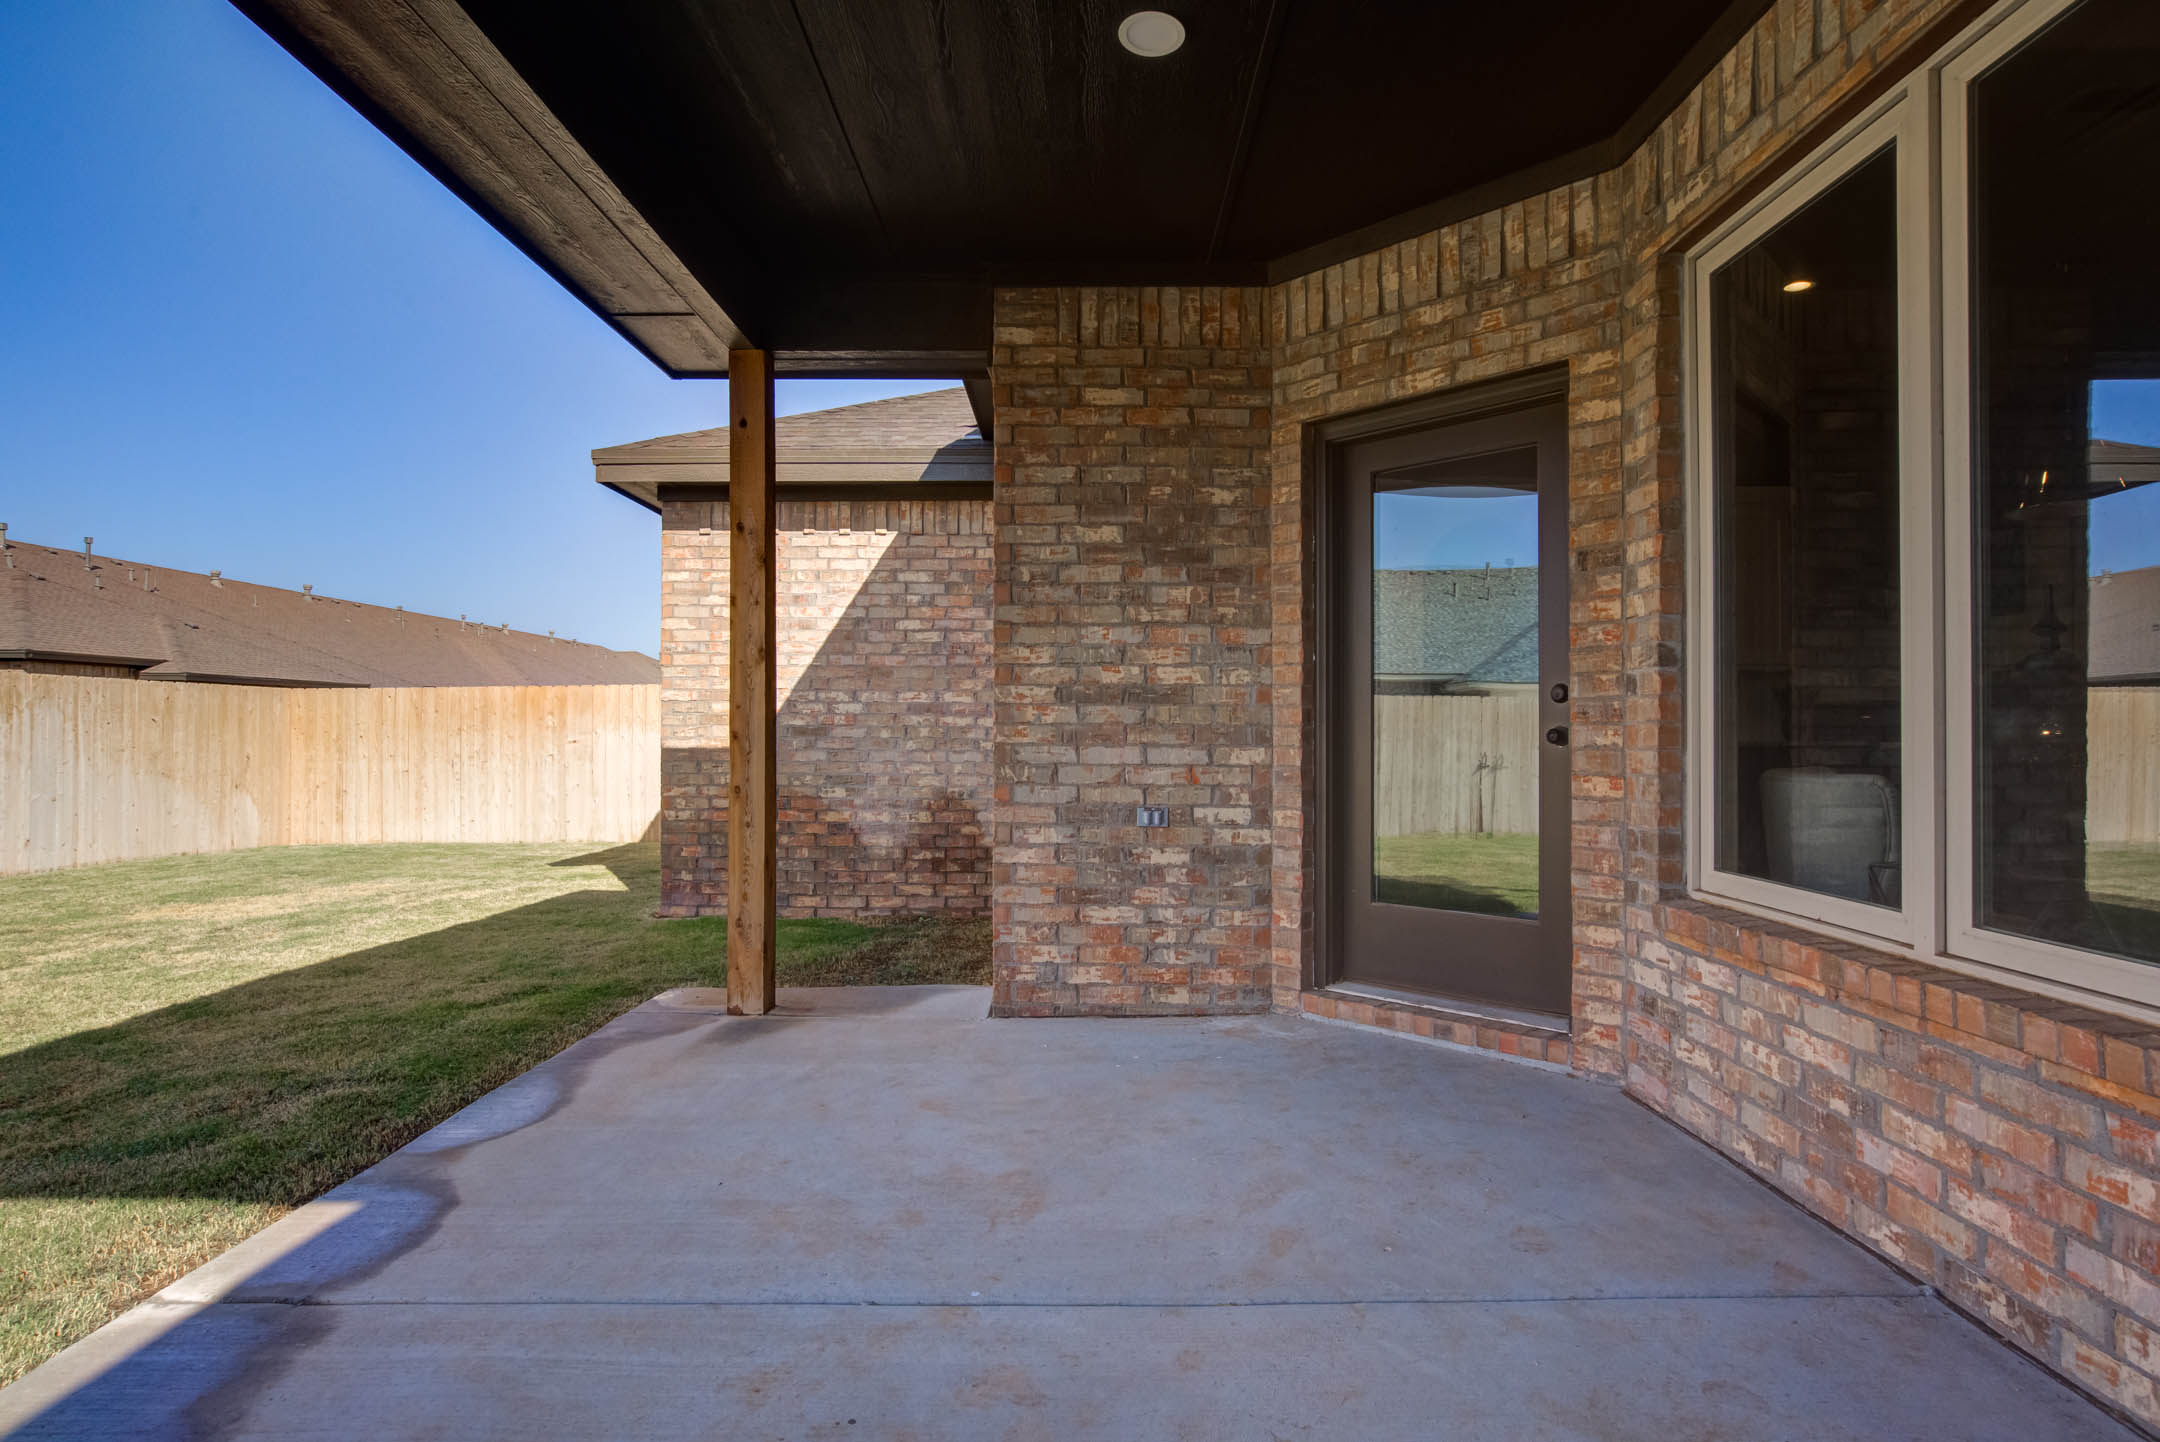 Covered patio of beautiful new home for sale in West Texas.